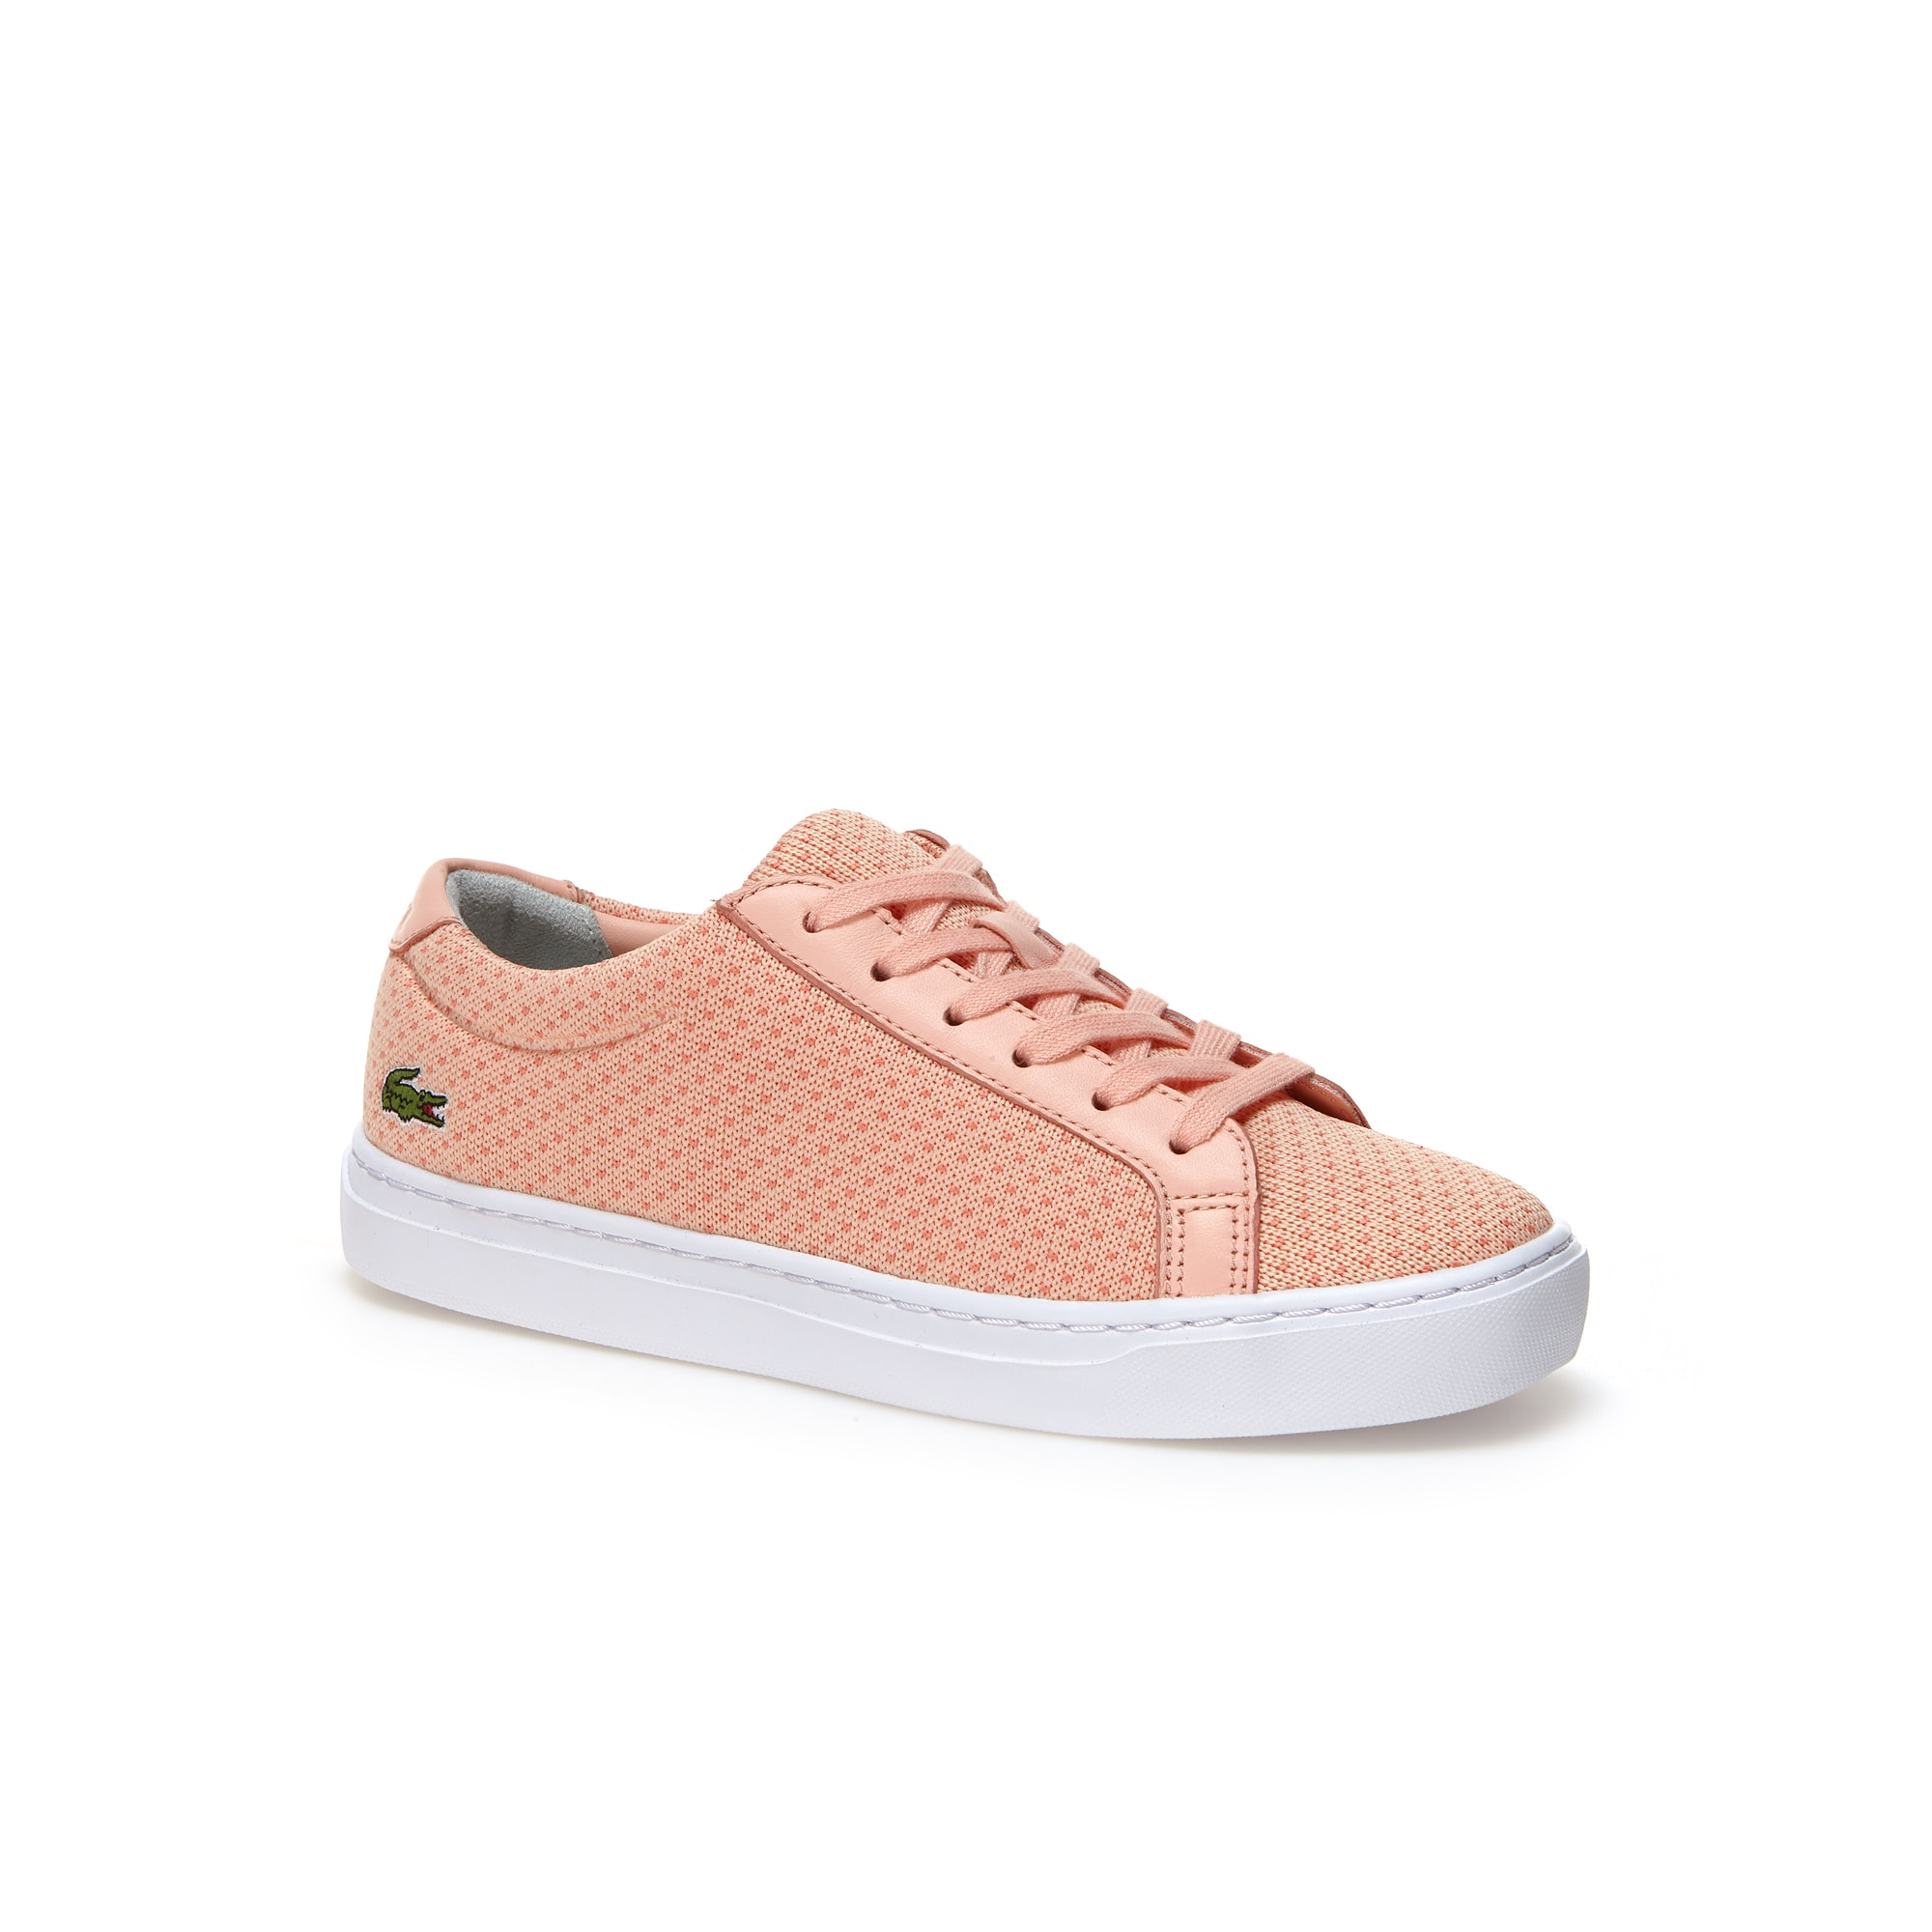 Women's L.12.12 Lightweight Sneakers